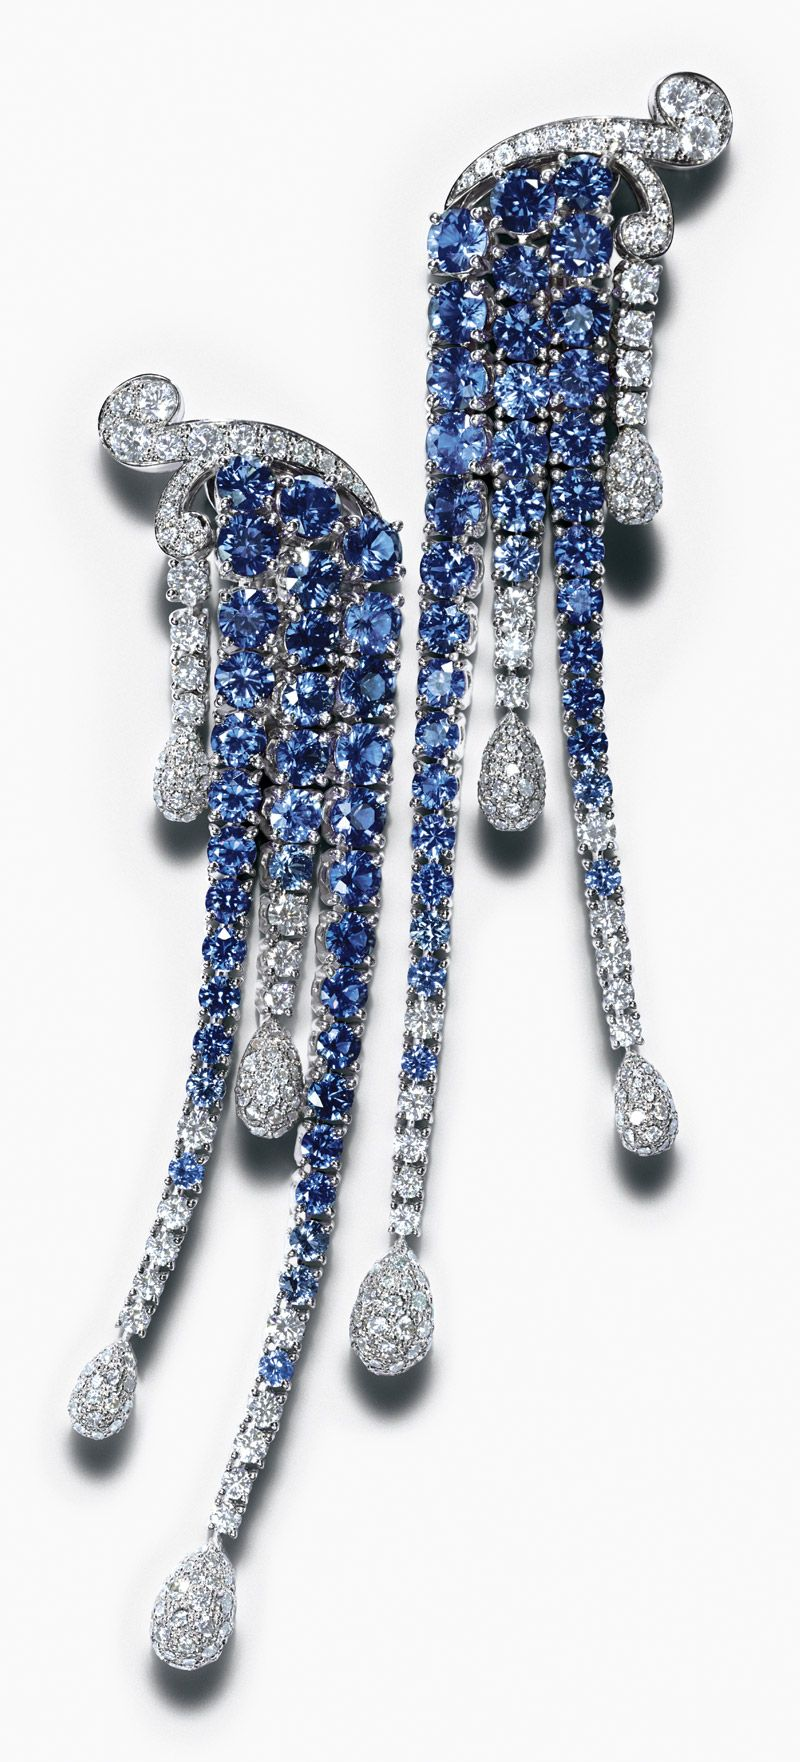 Tiffany earrings with sapphires and round and pear-shaped diamonds in white gold, from the 2015 Blue Book collection.